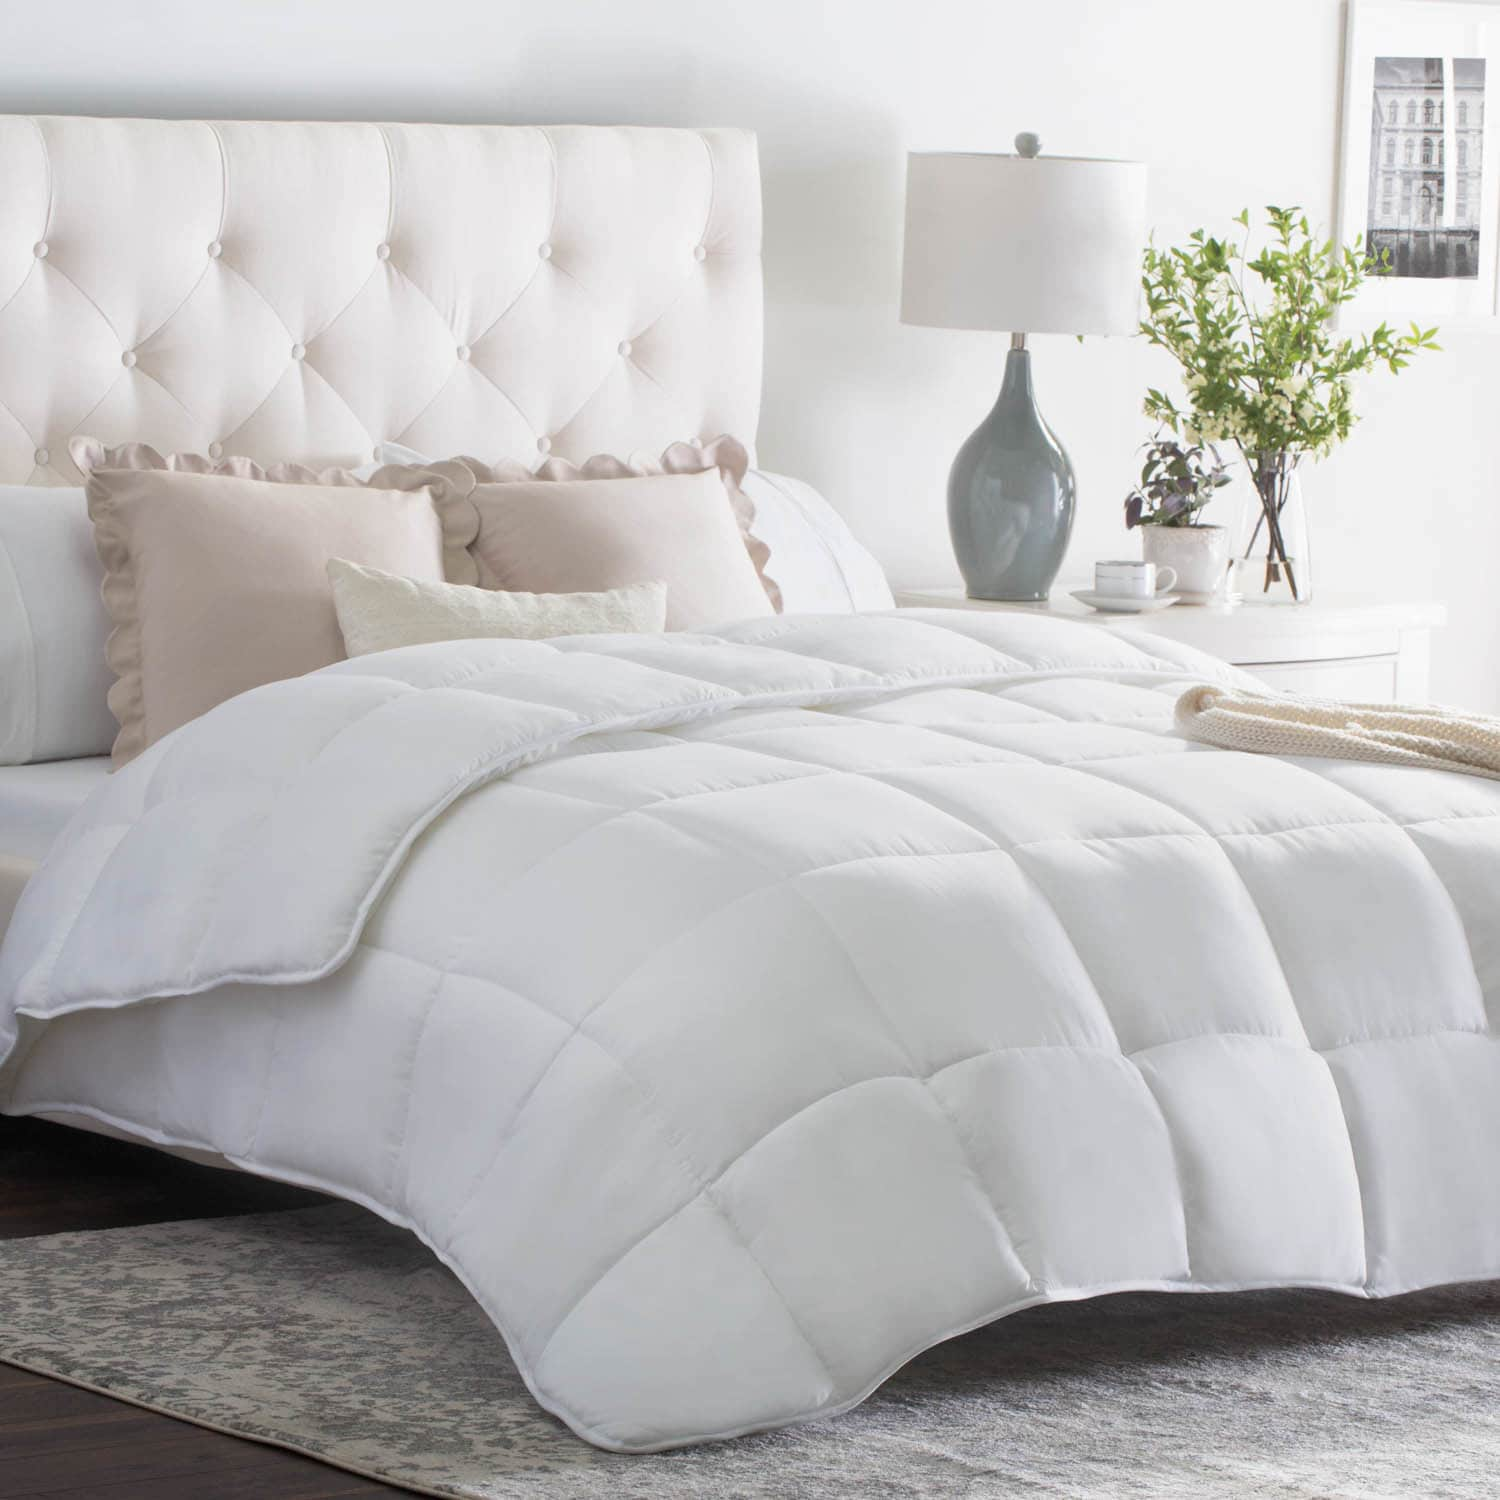 Weekender Quilted Down Alternative Hotel Style Comforter Free Shipping On Orders Over 45 23208864